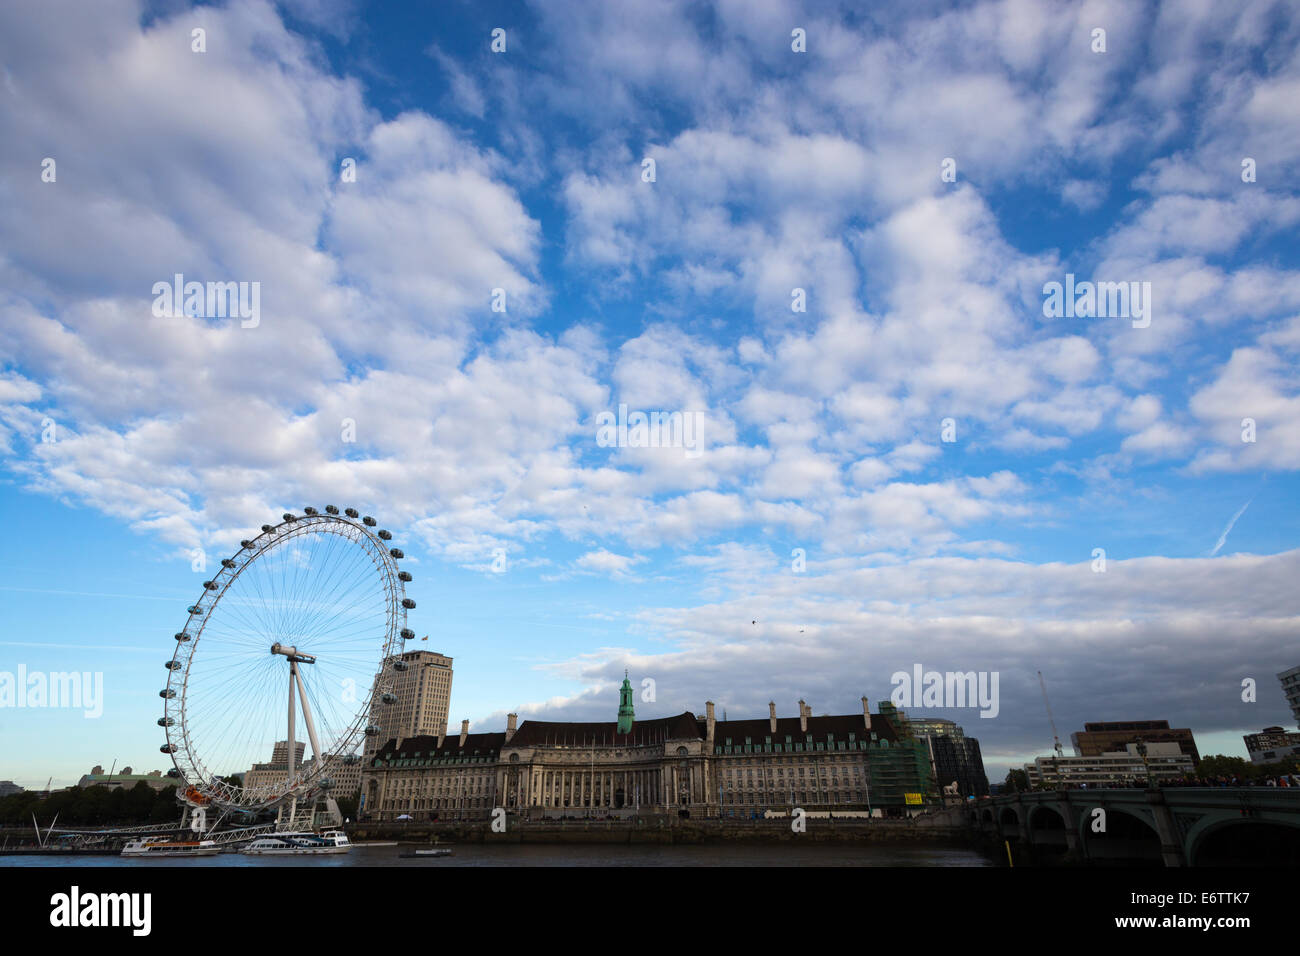 london-eye-on-south-bank-of-the-river-th